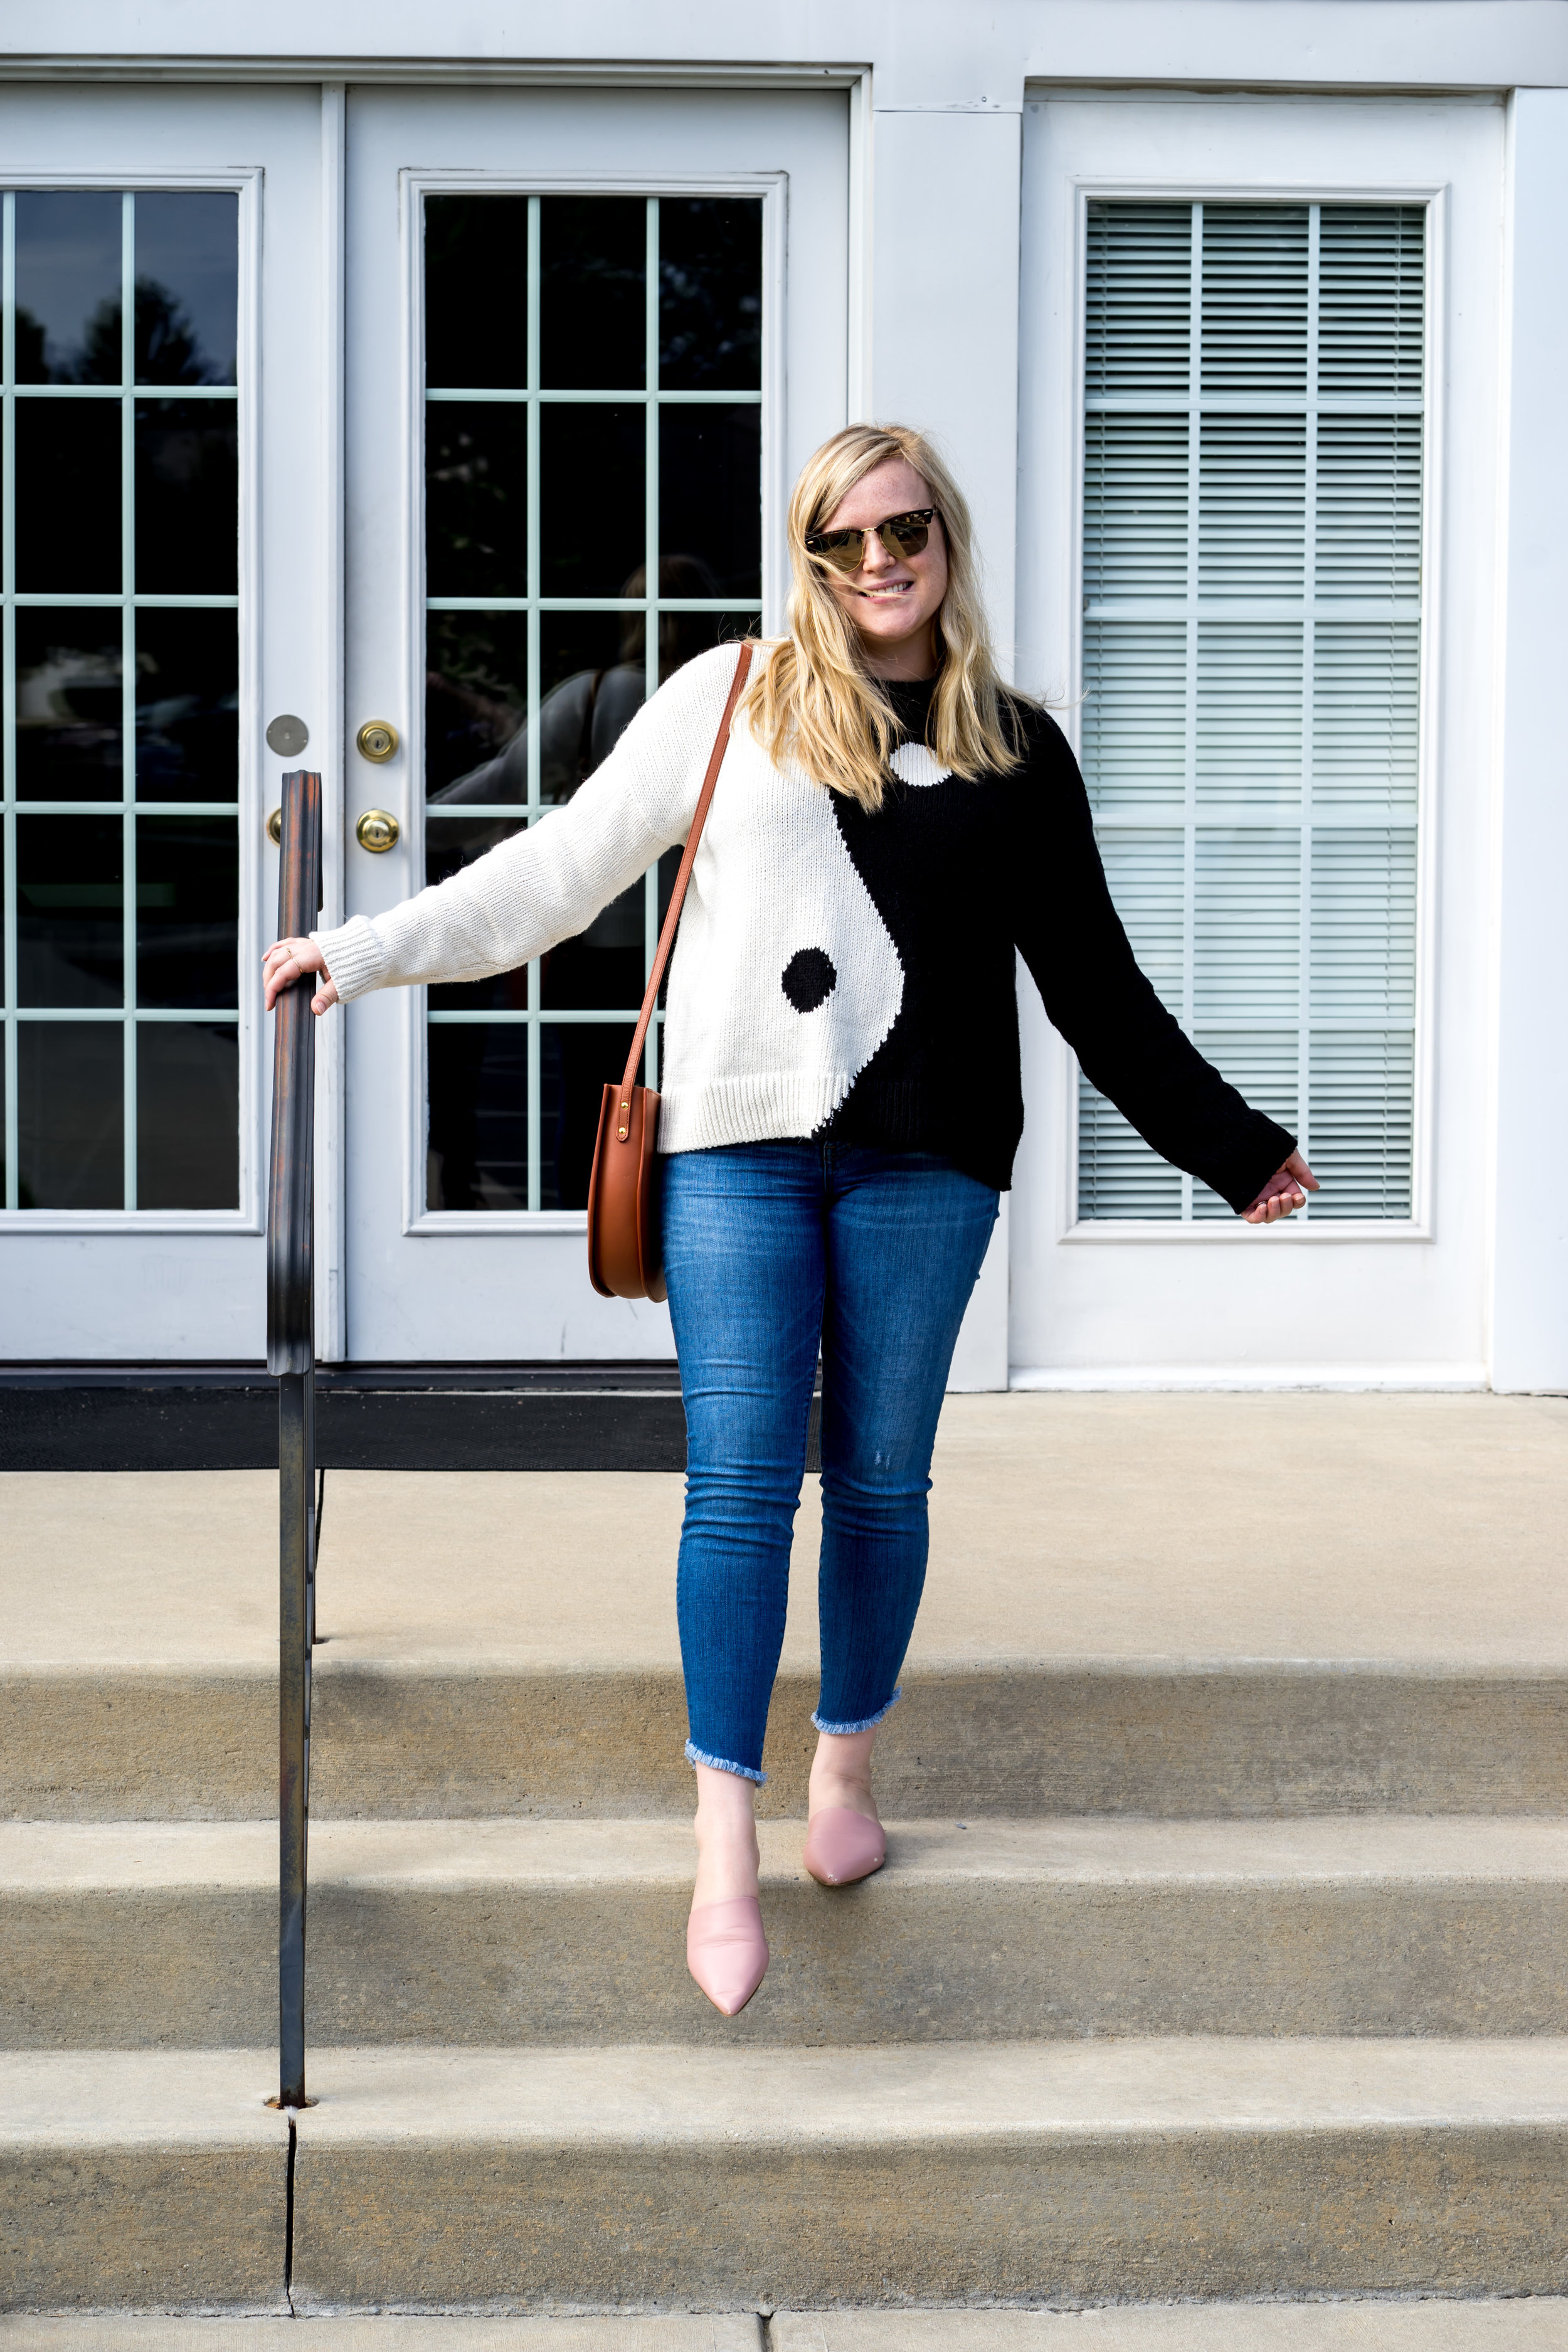 Maggie a la Mode - Madewell New Fall Arrivals 2018 Yin and Yang Sweater, Madewell Tulip-Hem Edition High-Rise Skinny Jeans, The Stowe Eloise Bag, Everlane The Pointed Slide